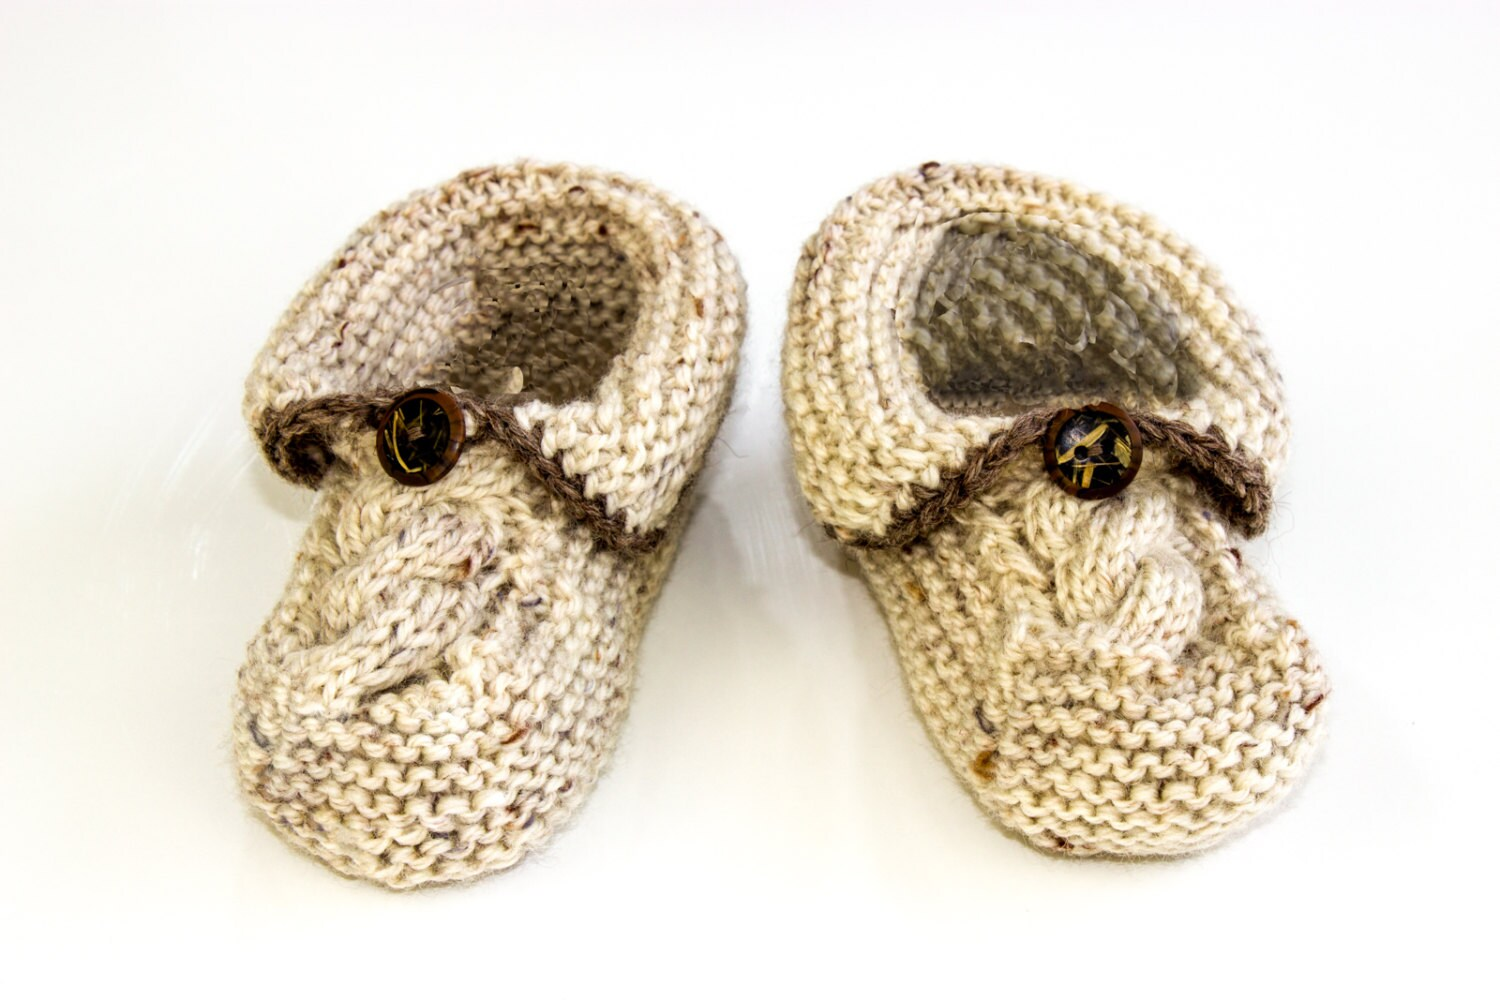 Knitting Patterns For Seamless Baby Booties : KNITTING PATTERN PDF Baby Slippers Pattern Seamless Booties